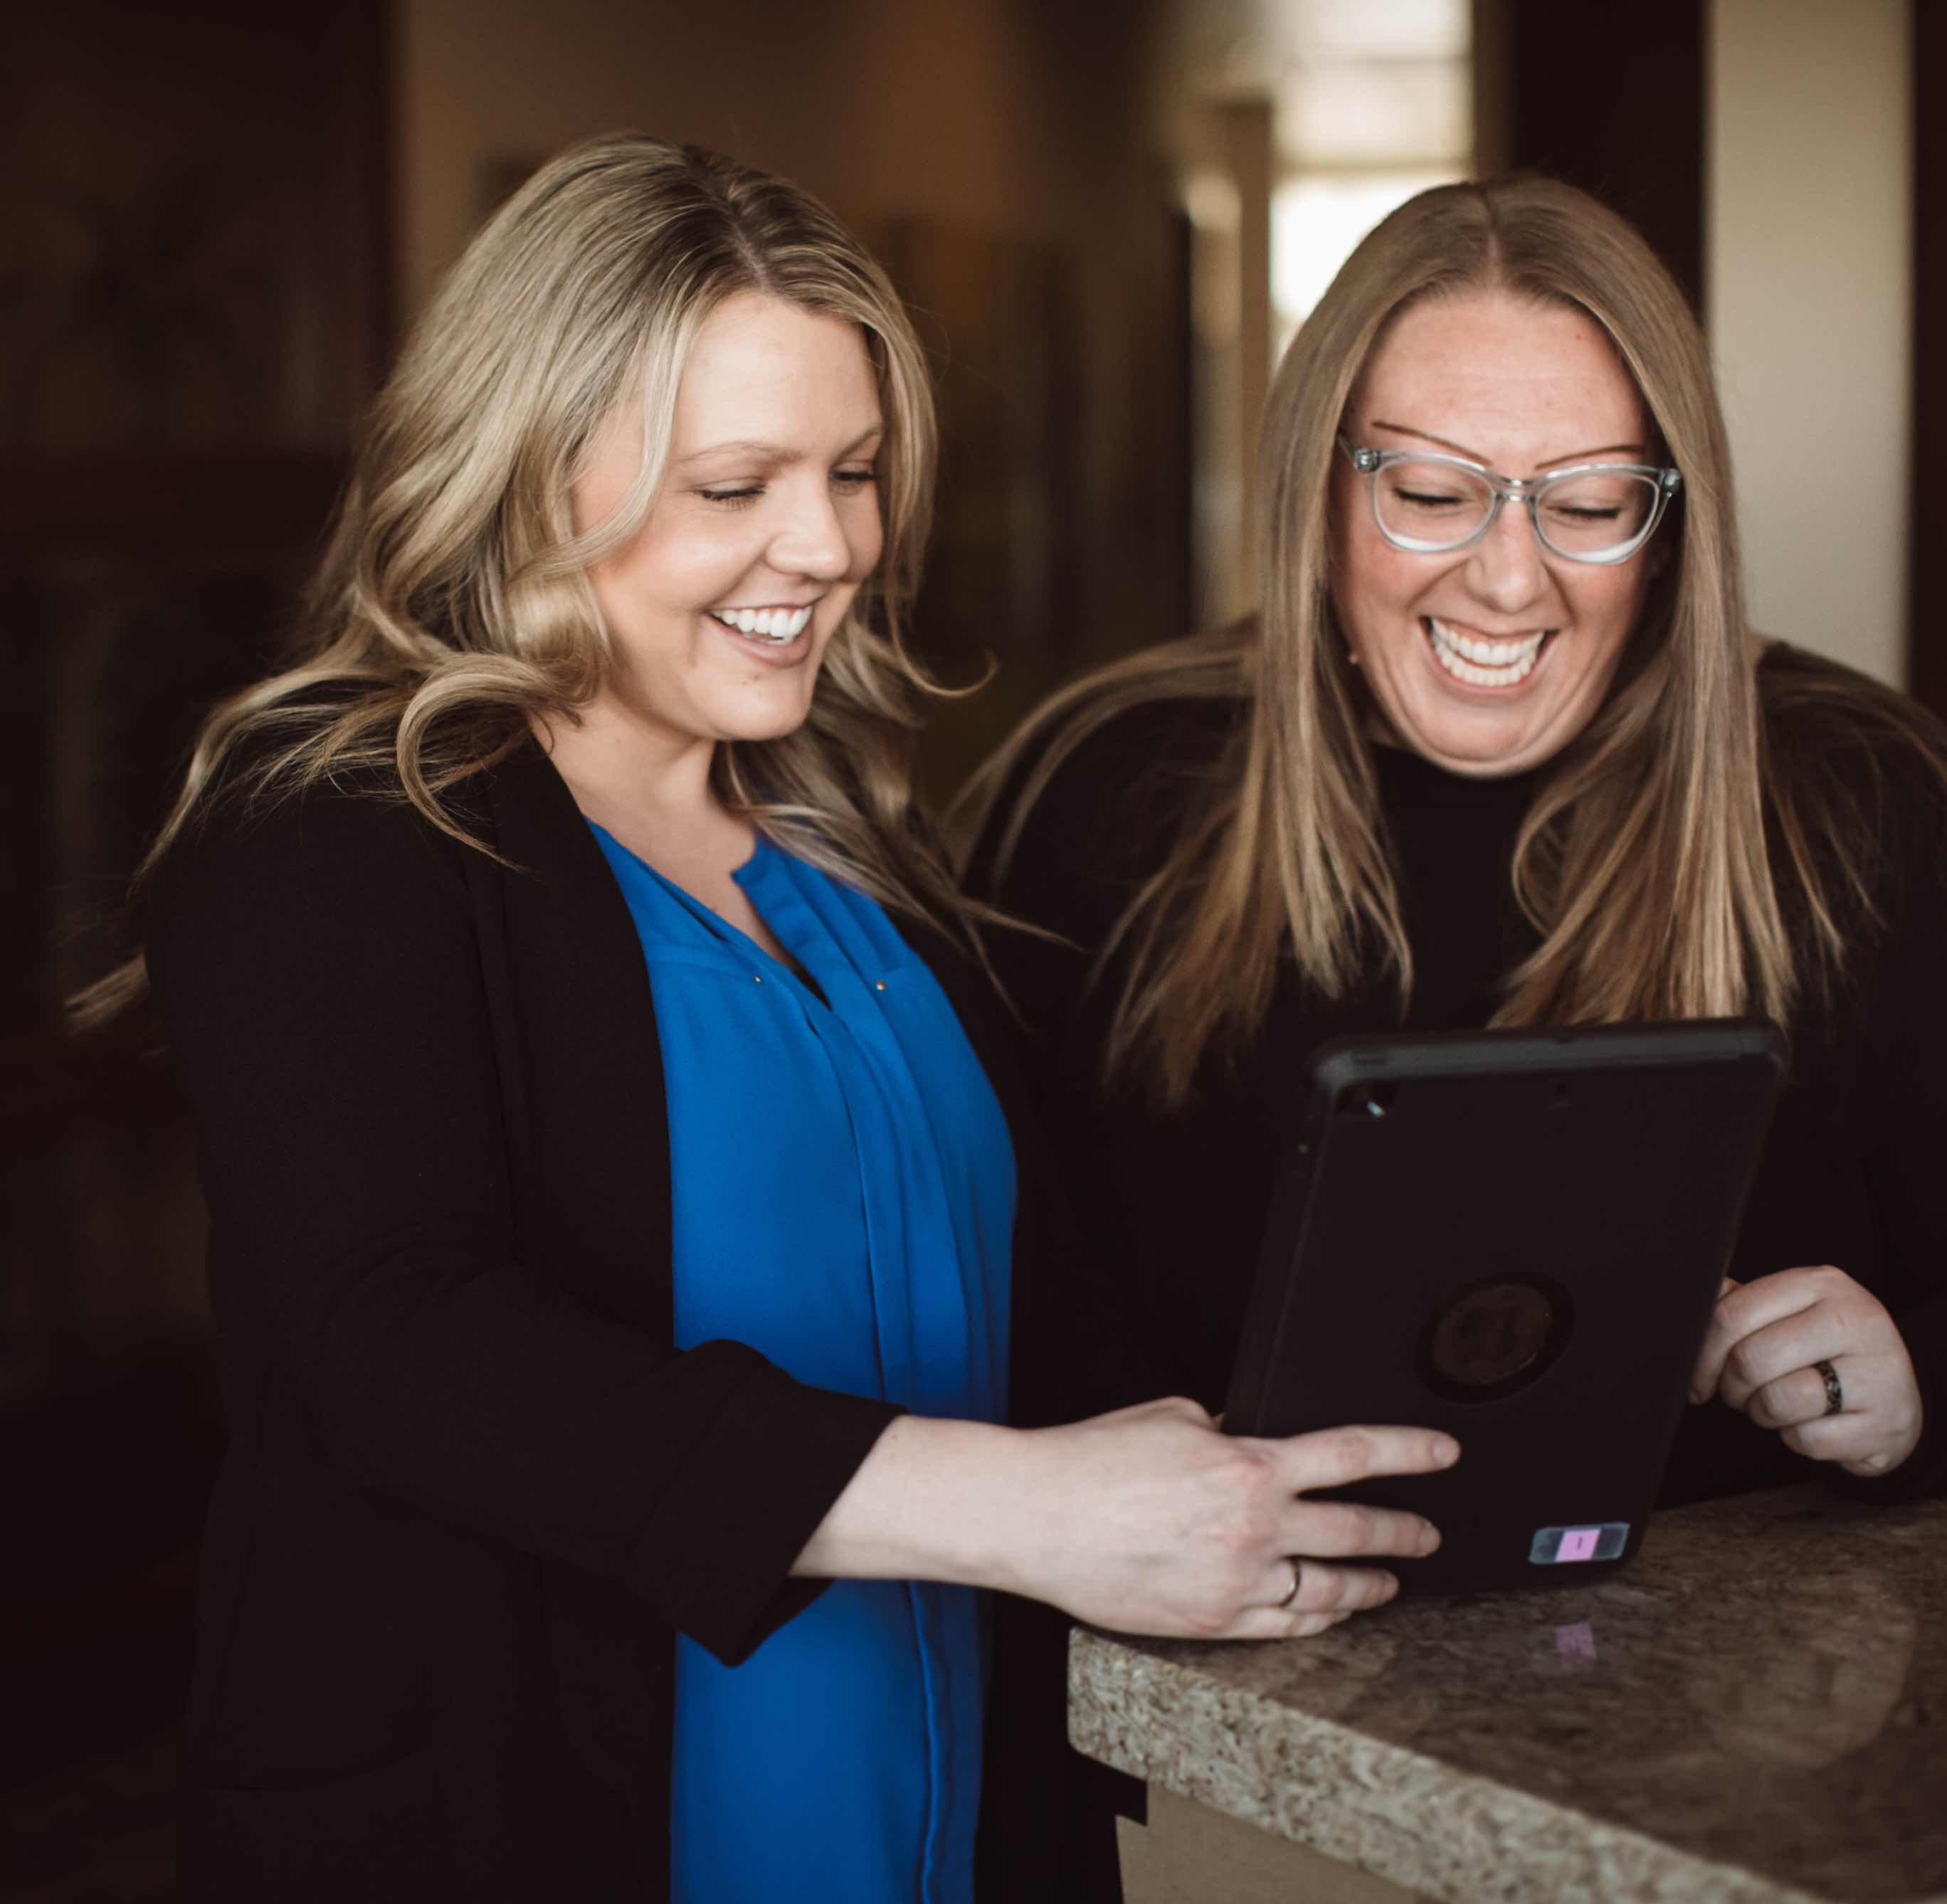 Photo of a team member and a patient looking at a tablet